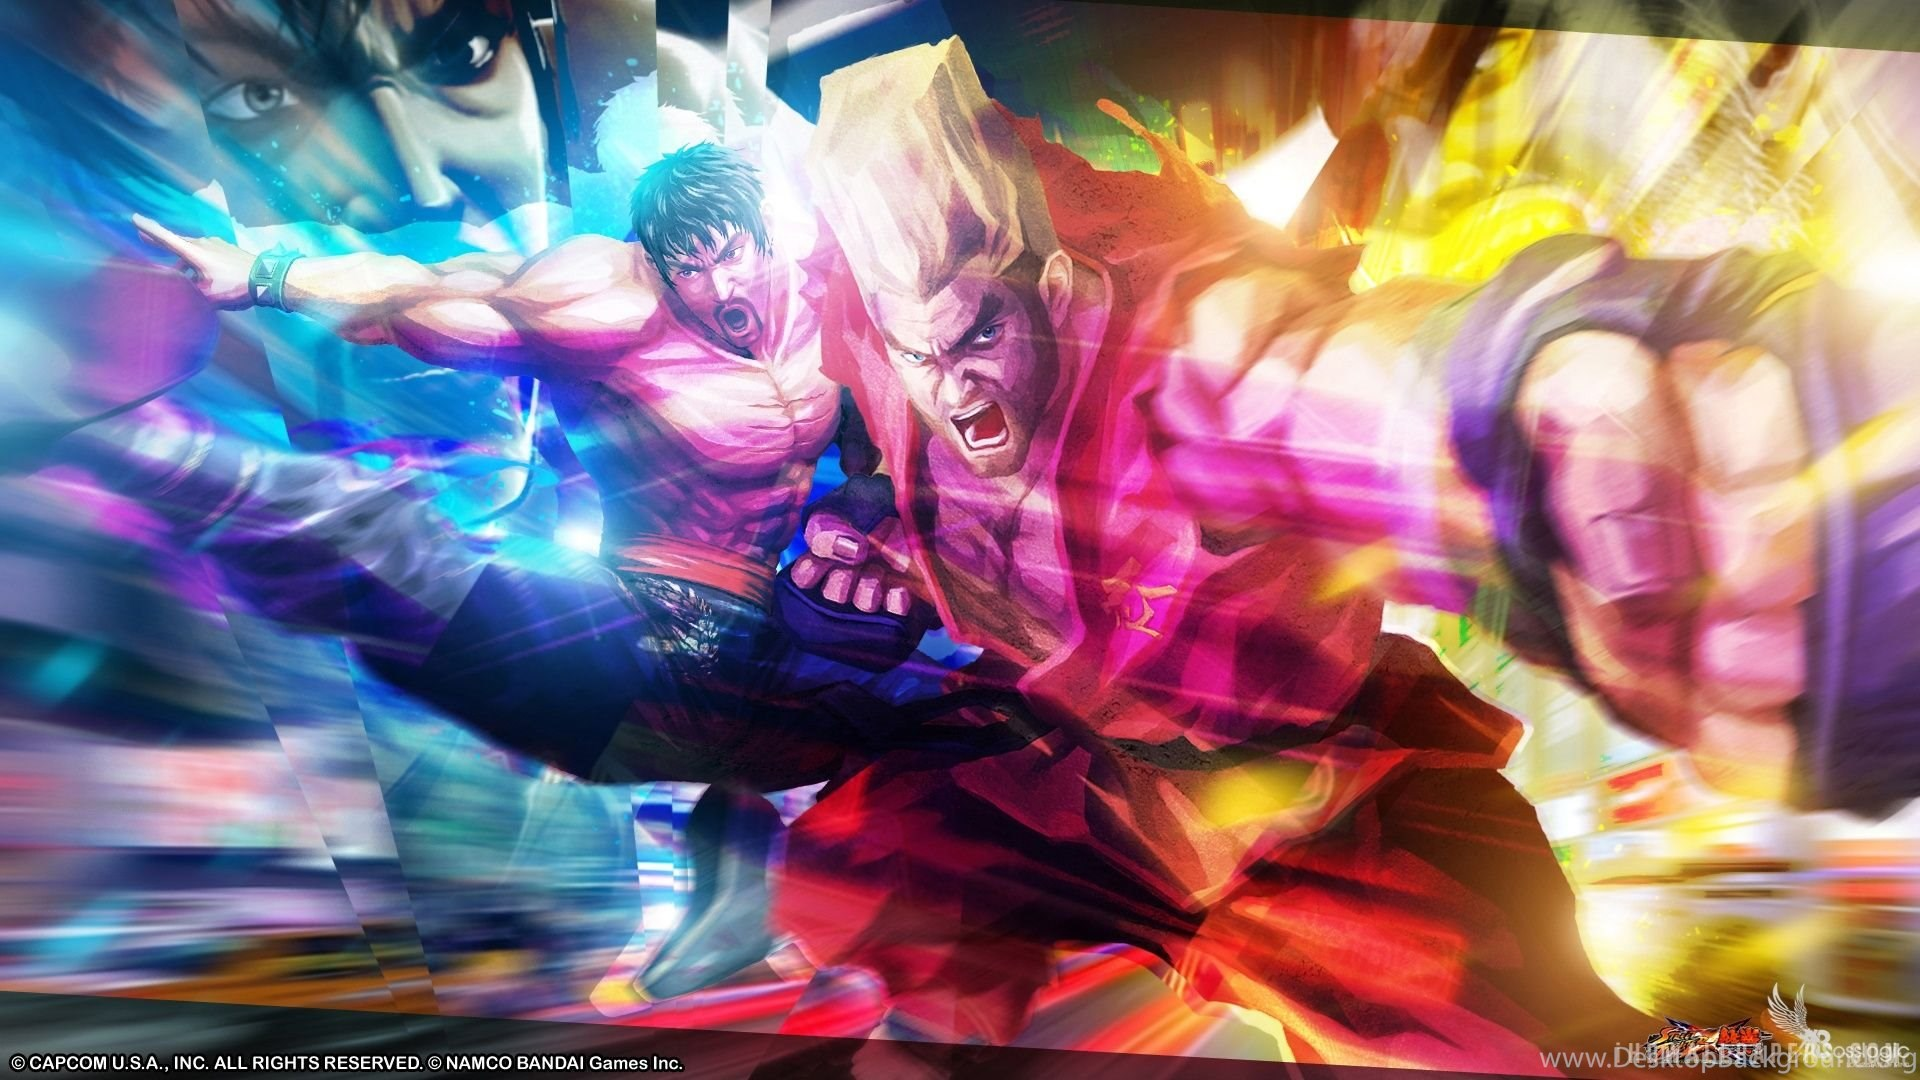 Law Paul Street Fighter X Tekken Hd Wallpapers Ihd Wallpapers